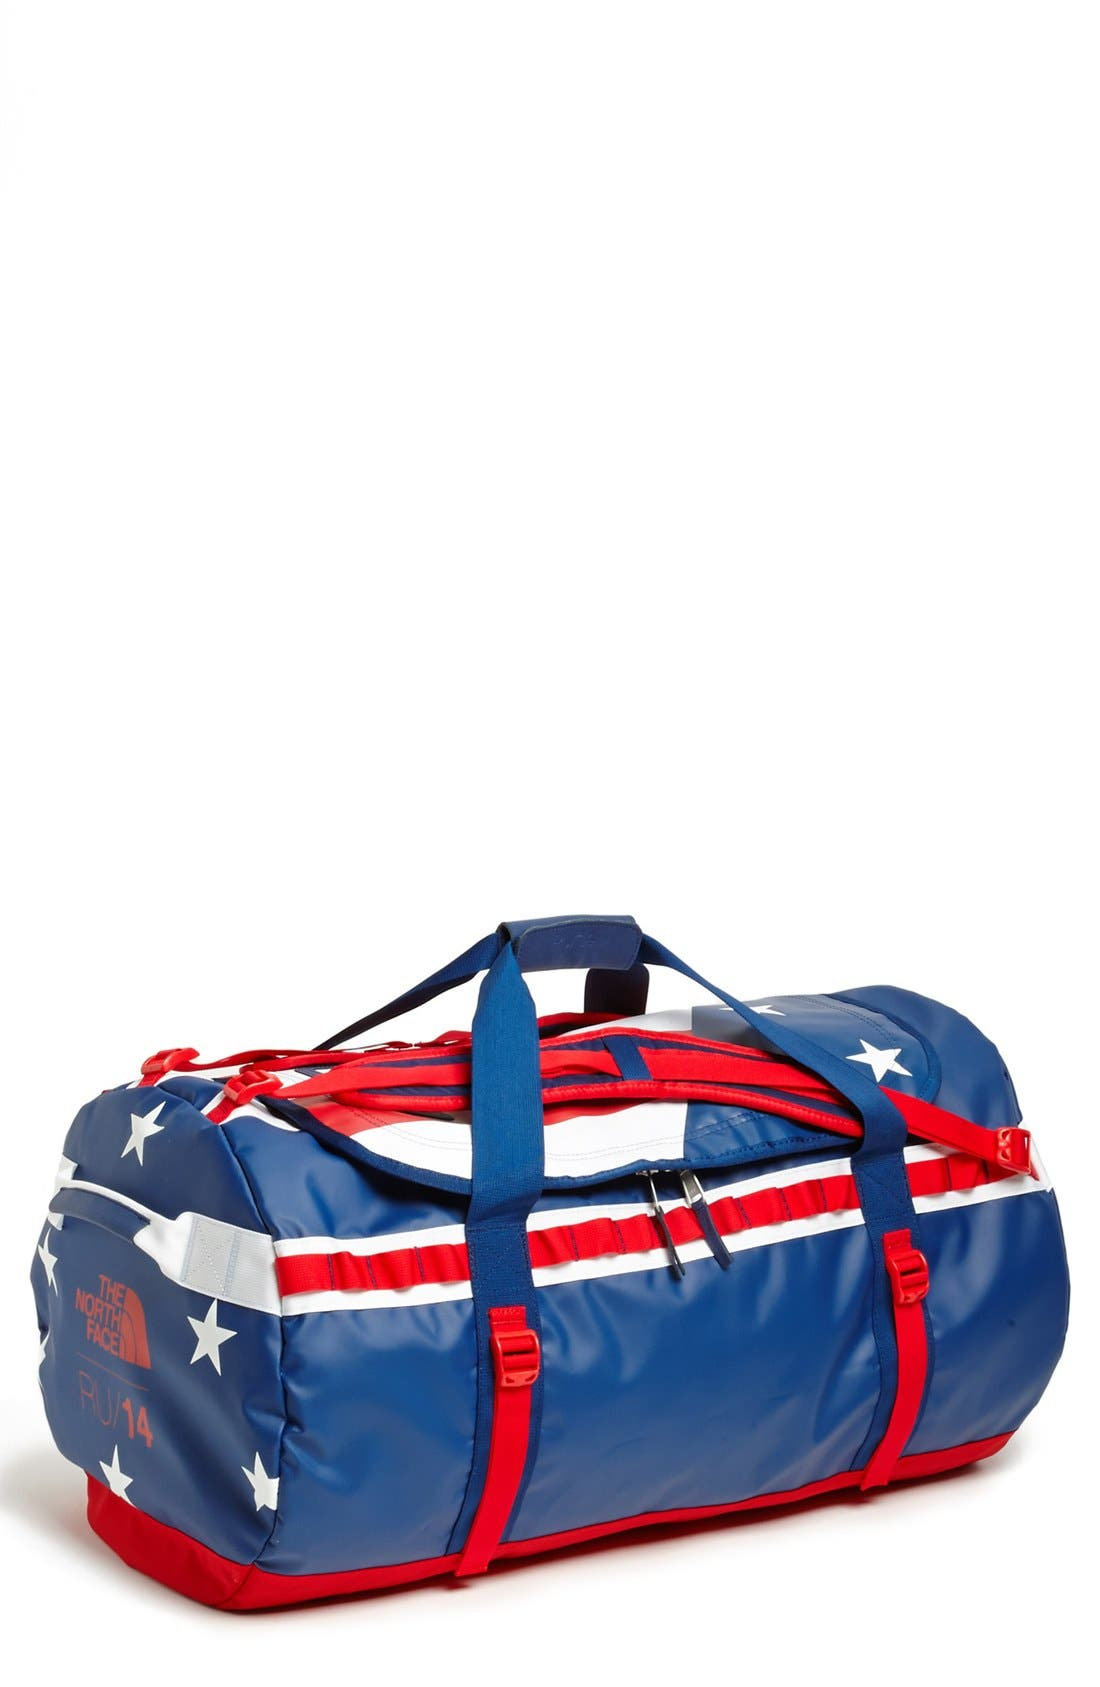 Alternate Image 1 Selected - The North Face 'Base Camp - International Collection' Duffel Bag